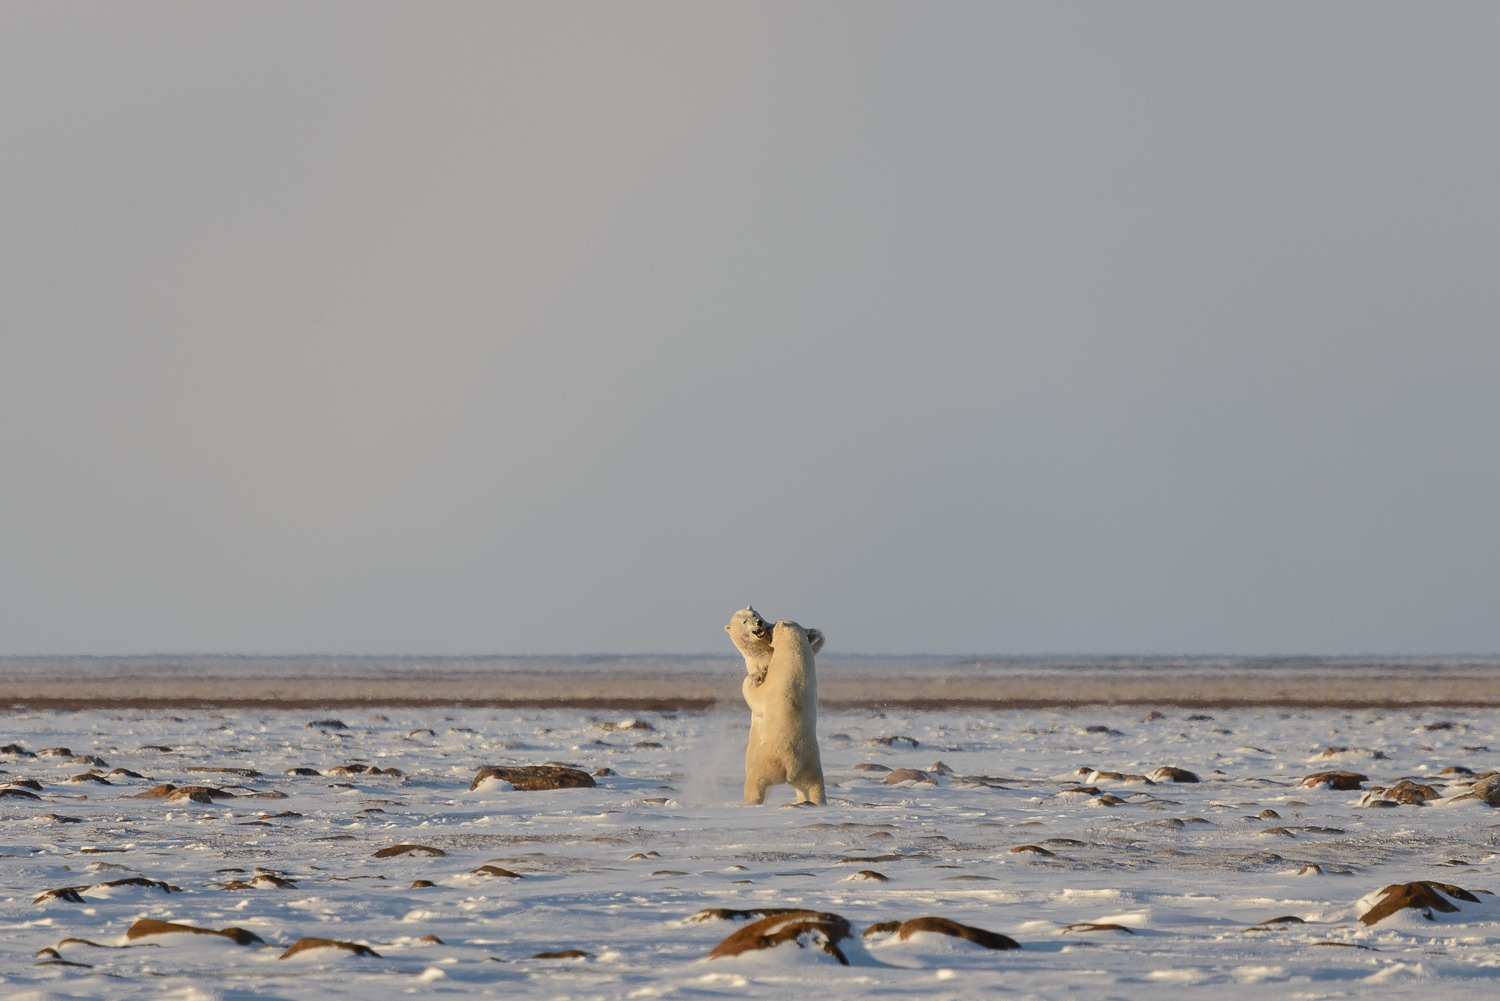 Male Polar Bears Sparring on the Tundra 3